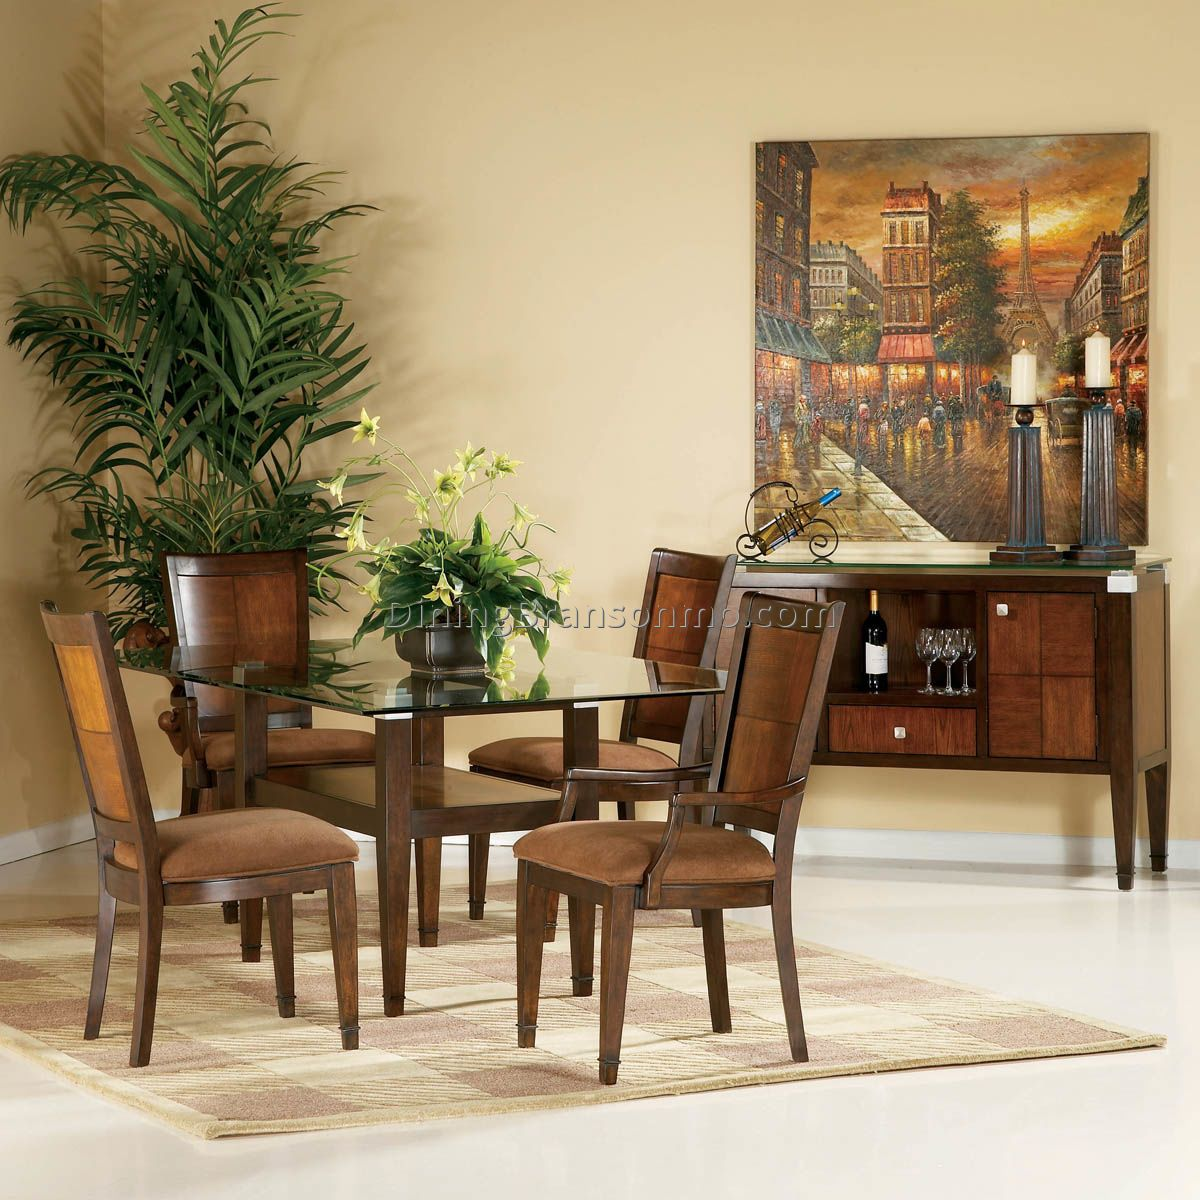 Image Piece Dining Room Sets Free Set Kmart Dining Room Sets Glass Dining Room Table Dining Table Dining room stores best free home